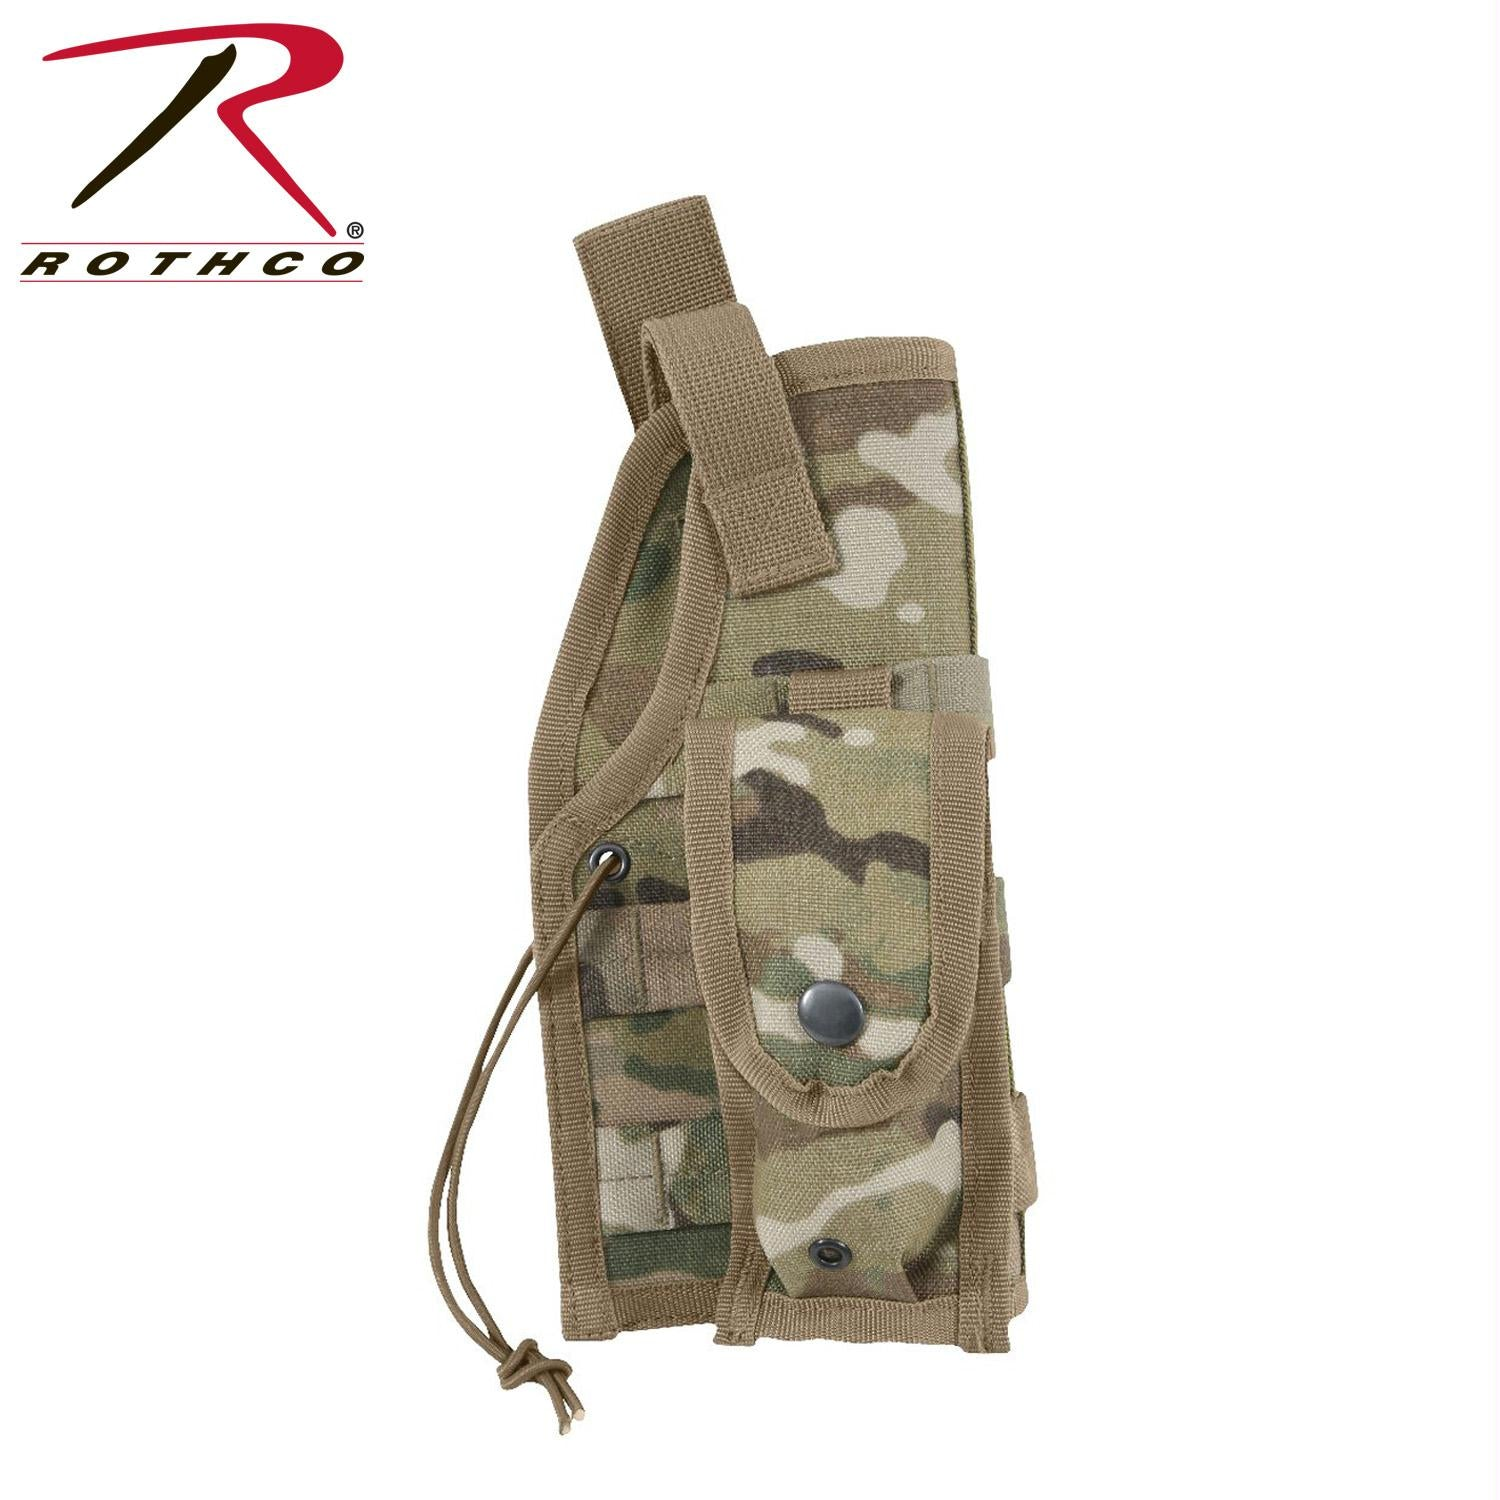 Rothco MOLLE Tactical Holster - MultiCam